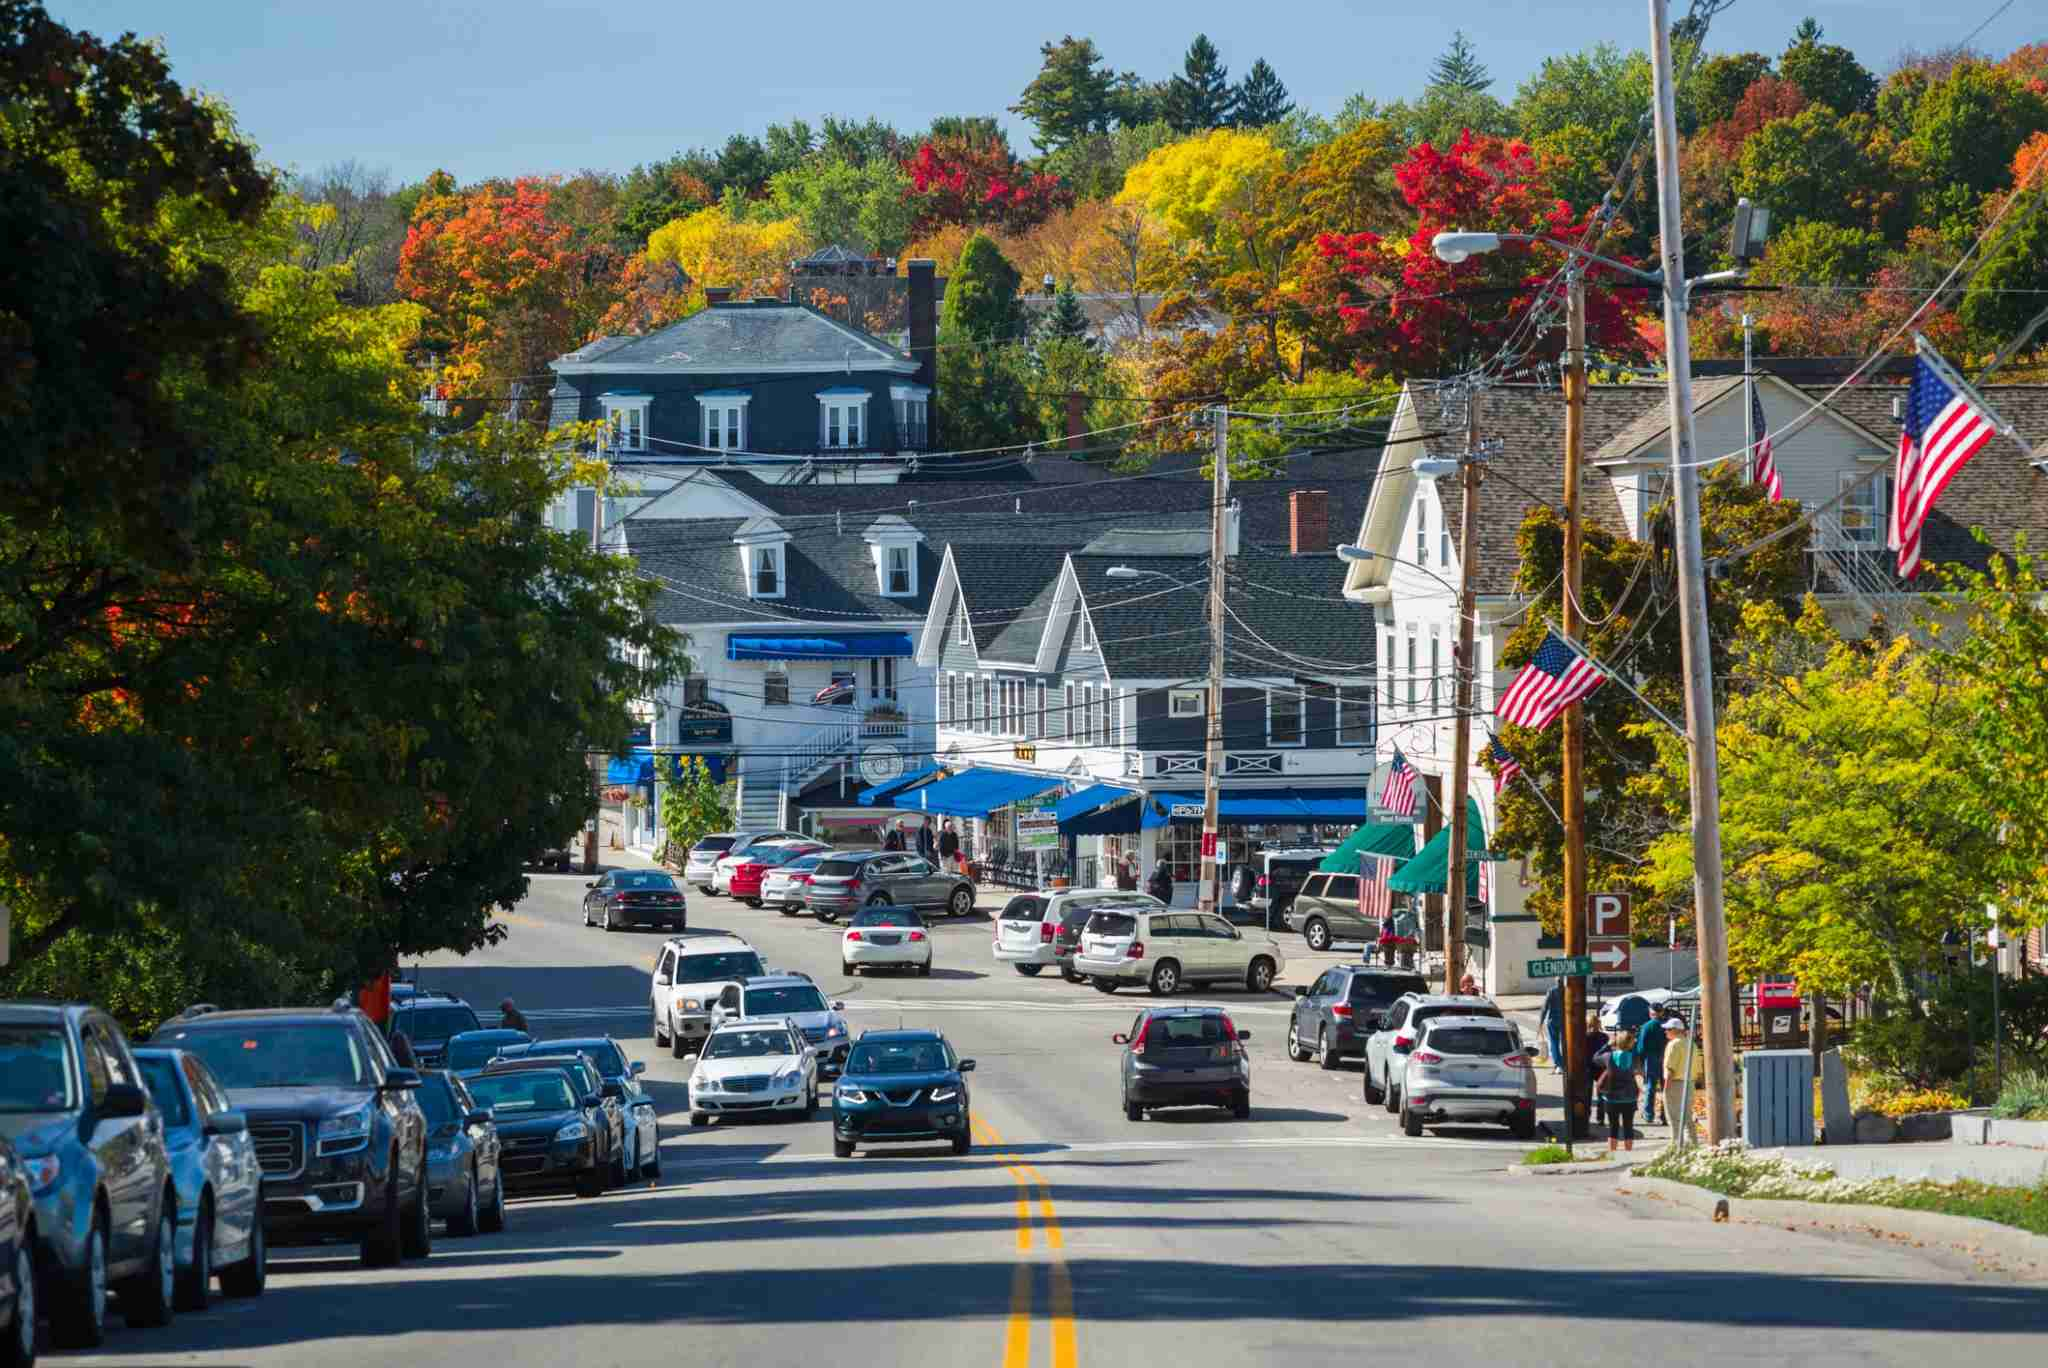 USA, New Hampshire, Lake Winnipesaukee Region (Walter Bibikow/Getty Images)